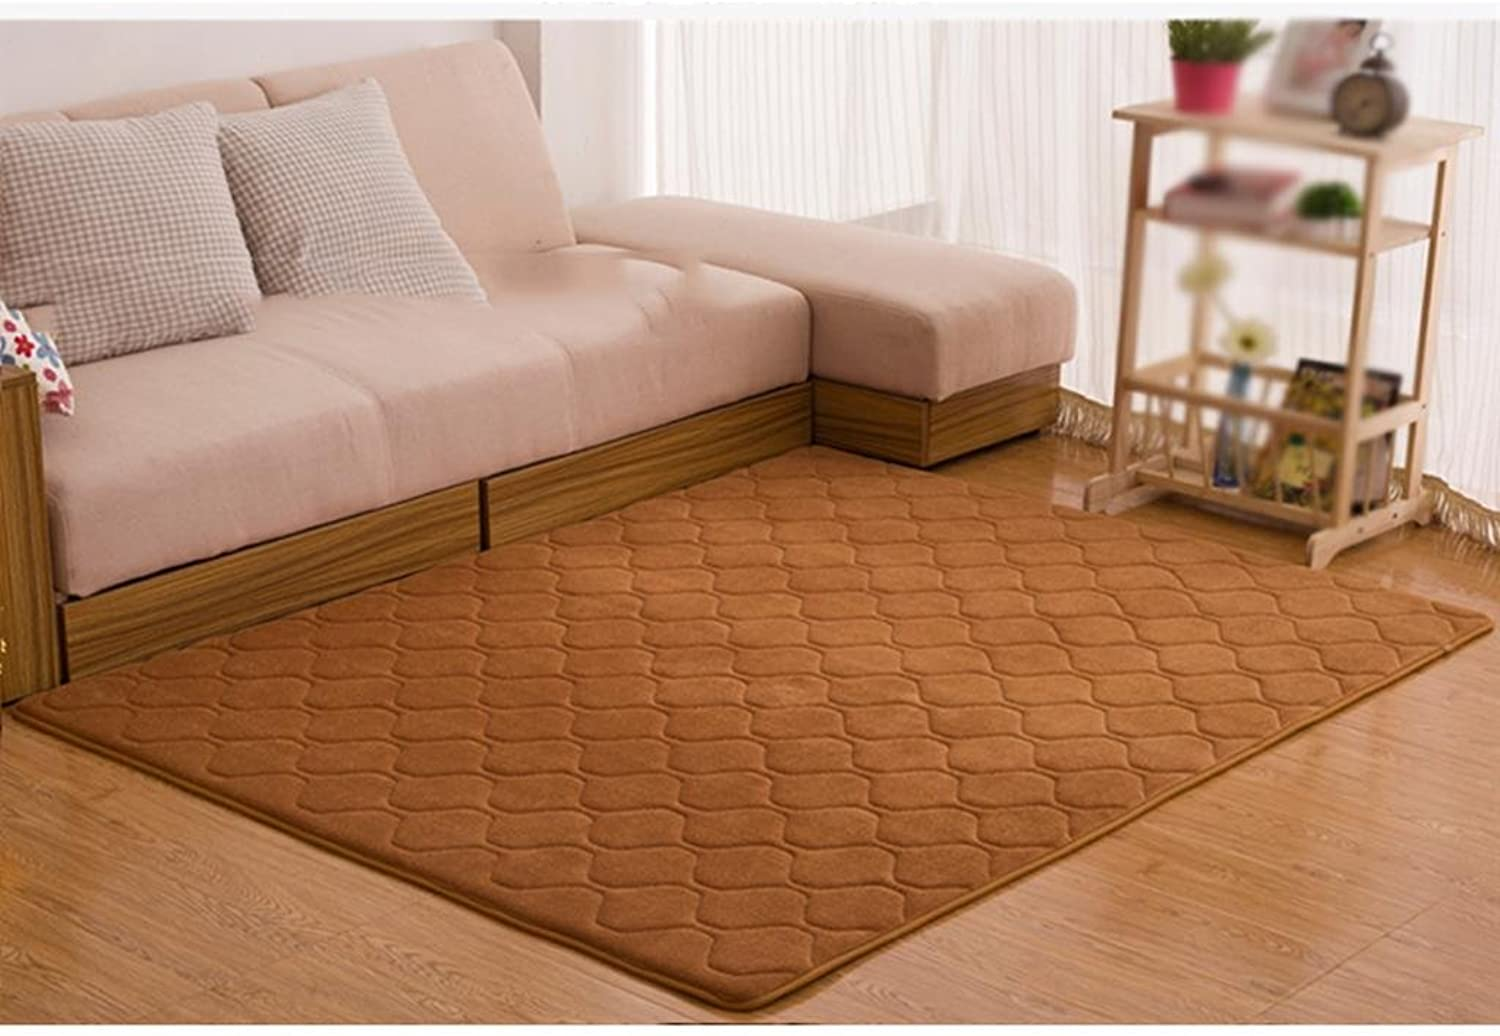 DYI carpets, bedroom, living room, coral, velvet mats, nonslip entrance mat